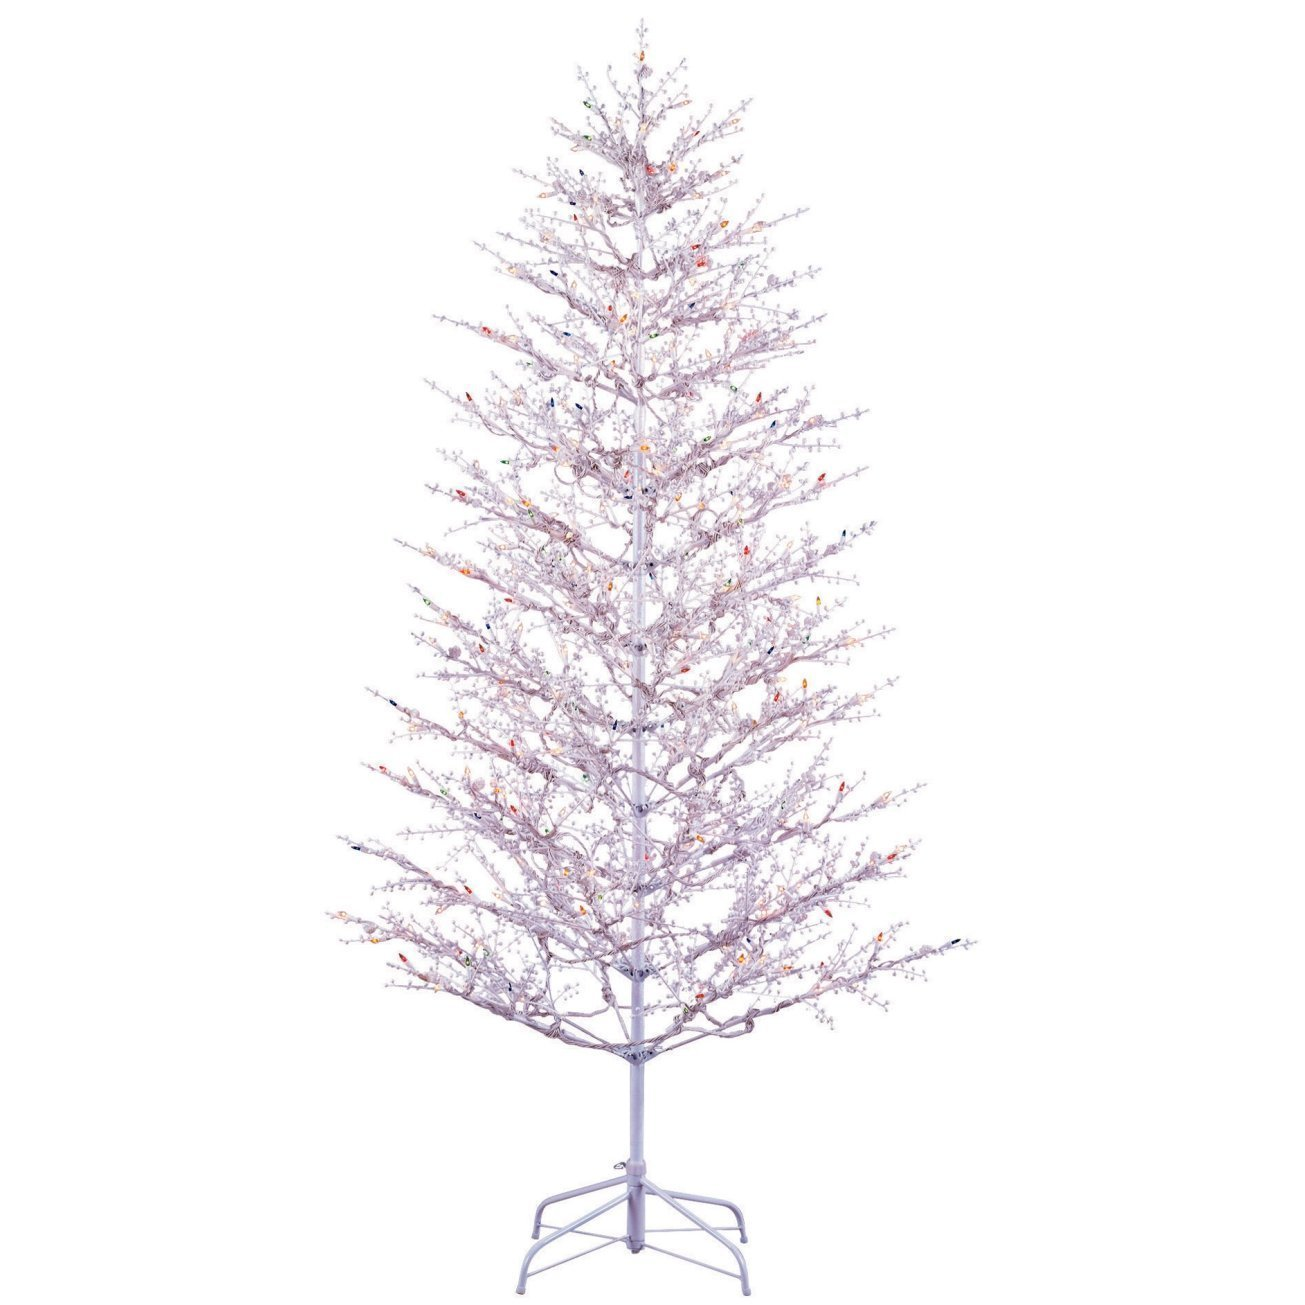 6 Lighted Twig Tree Lighted Palm Trees Wiring Diagram ~ Odicis